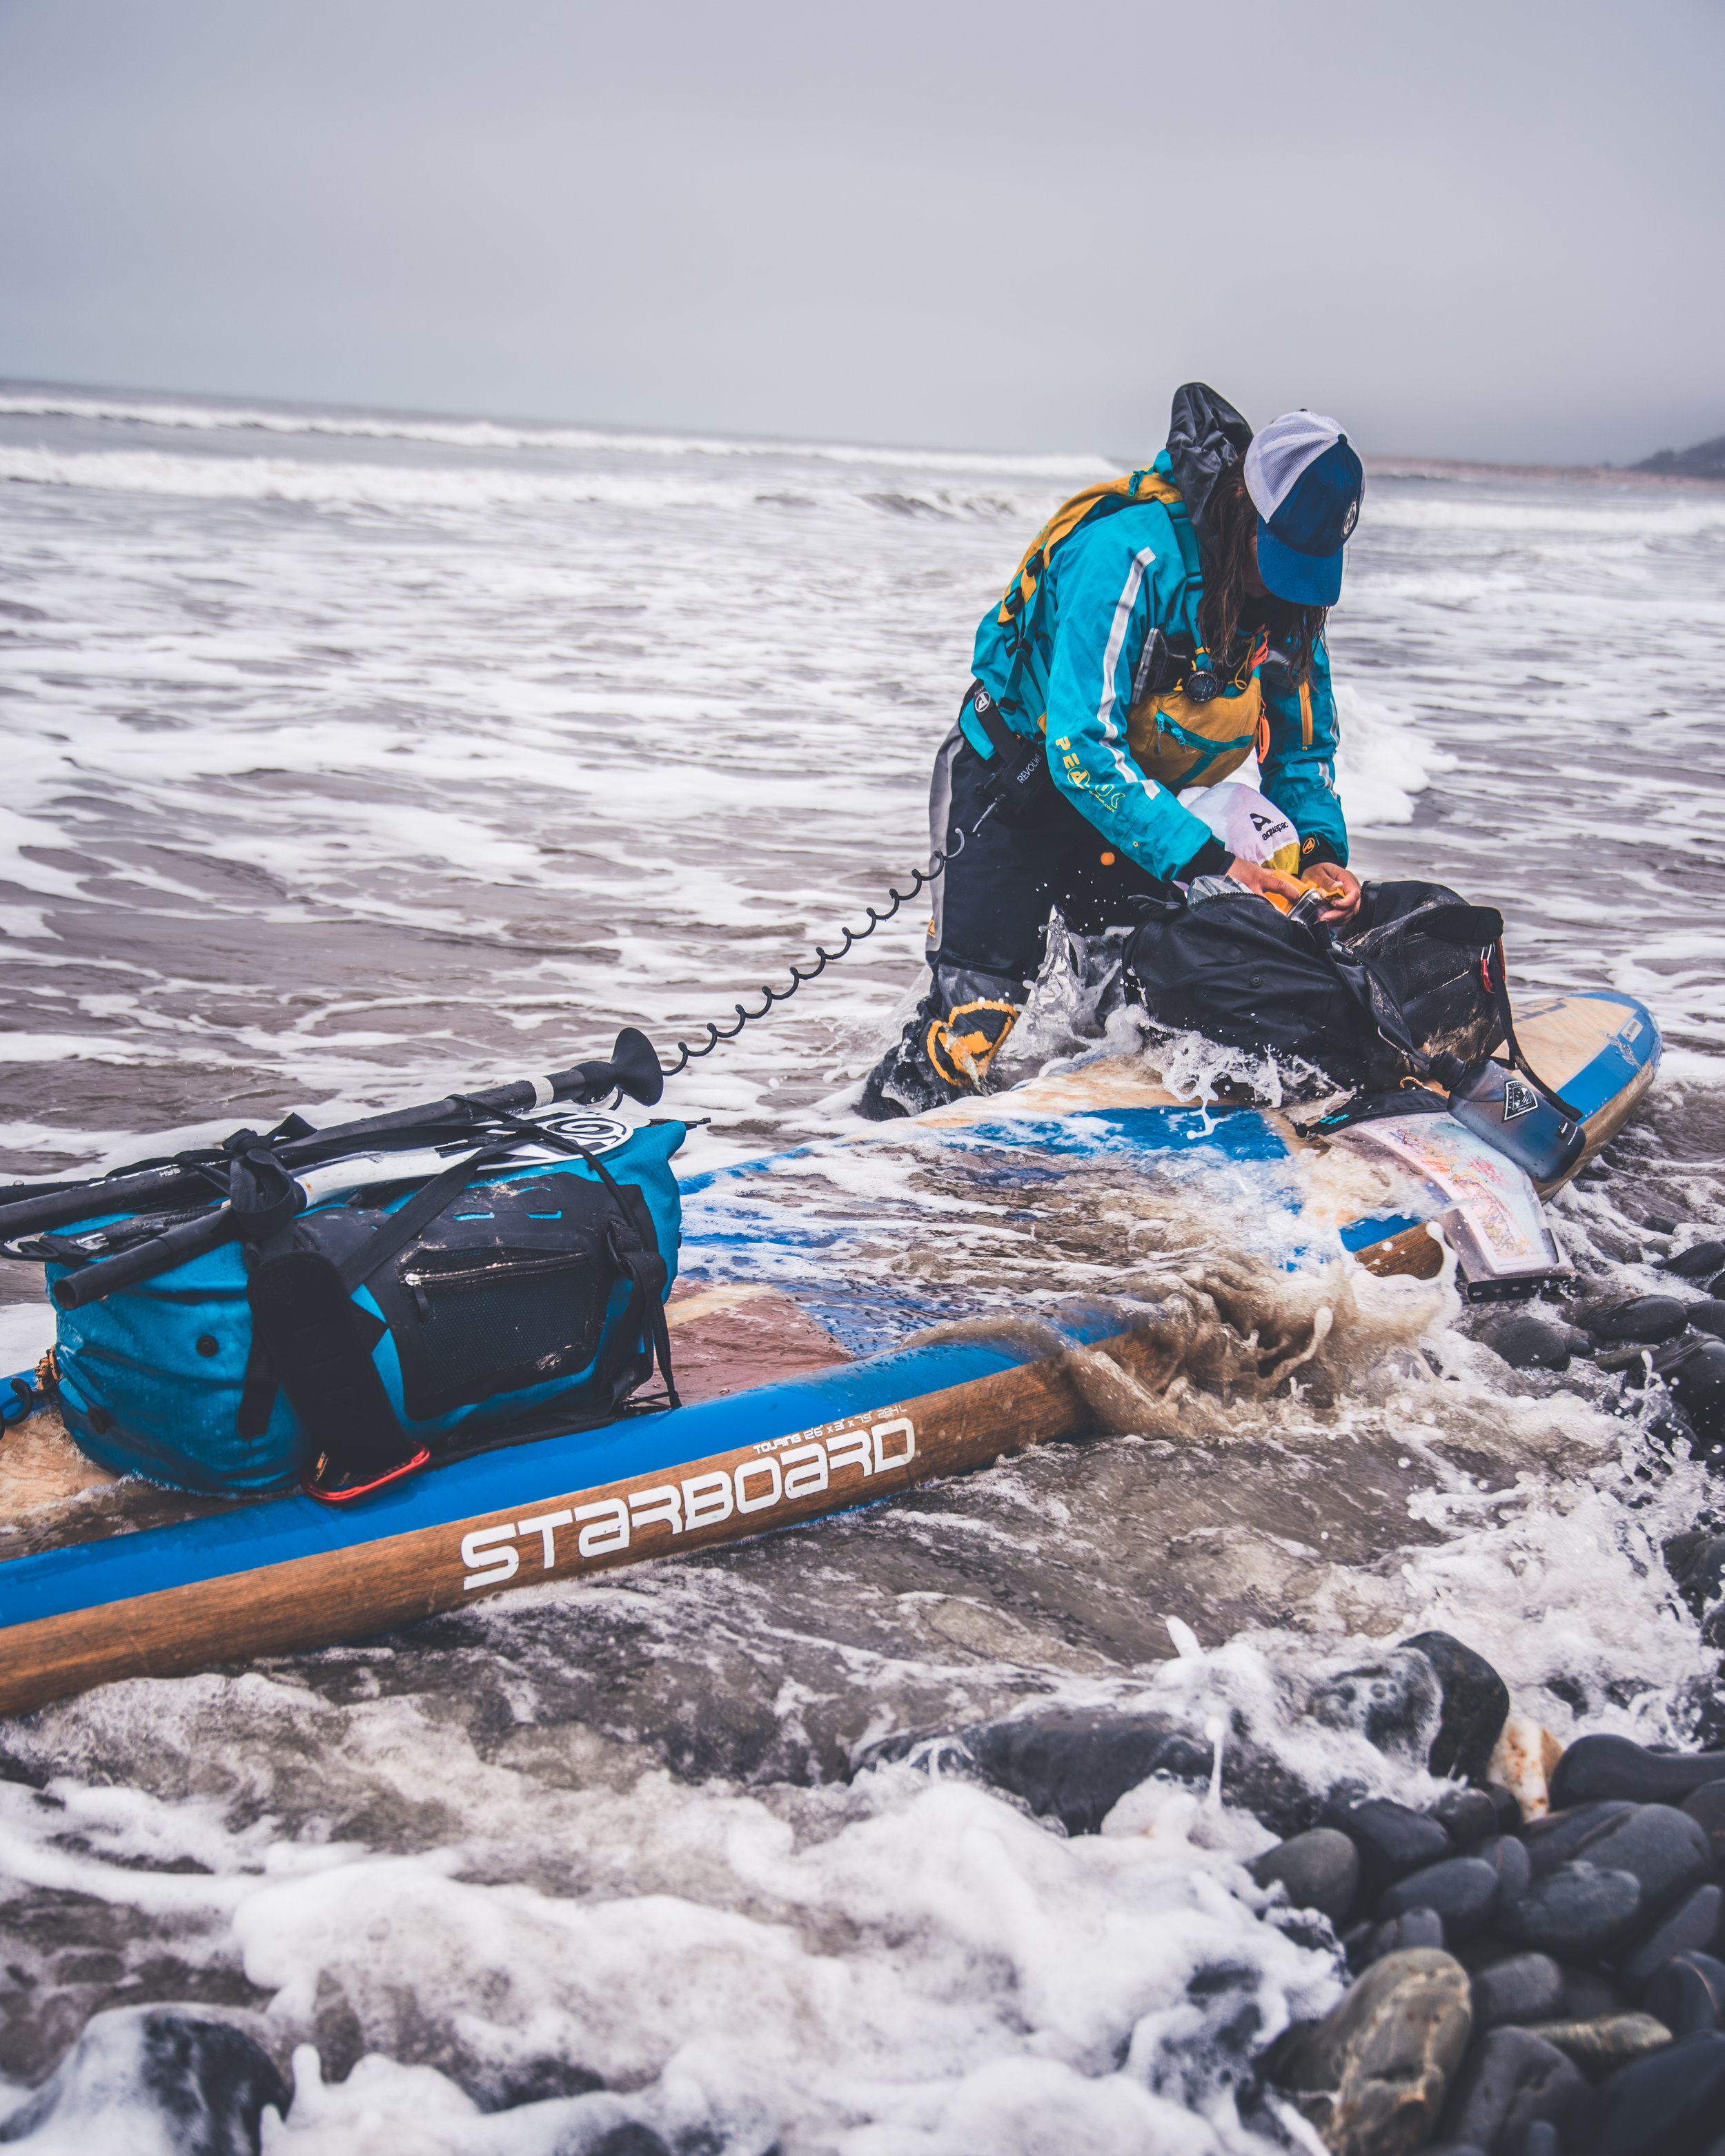 SUP AGAINST SUPWELSH COAST - Written and photographed for Sian Sykes and Sidetracked Magazine Field Journal